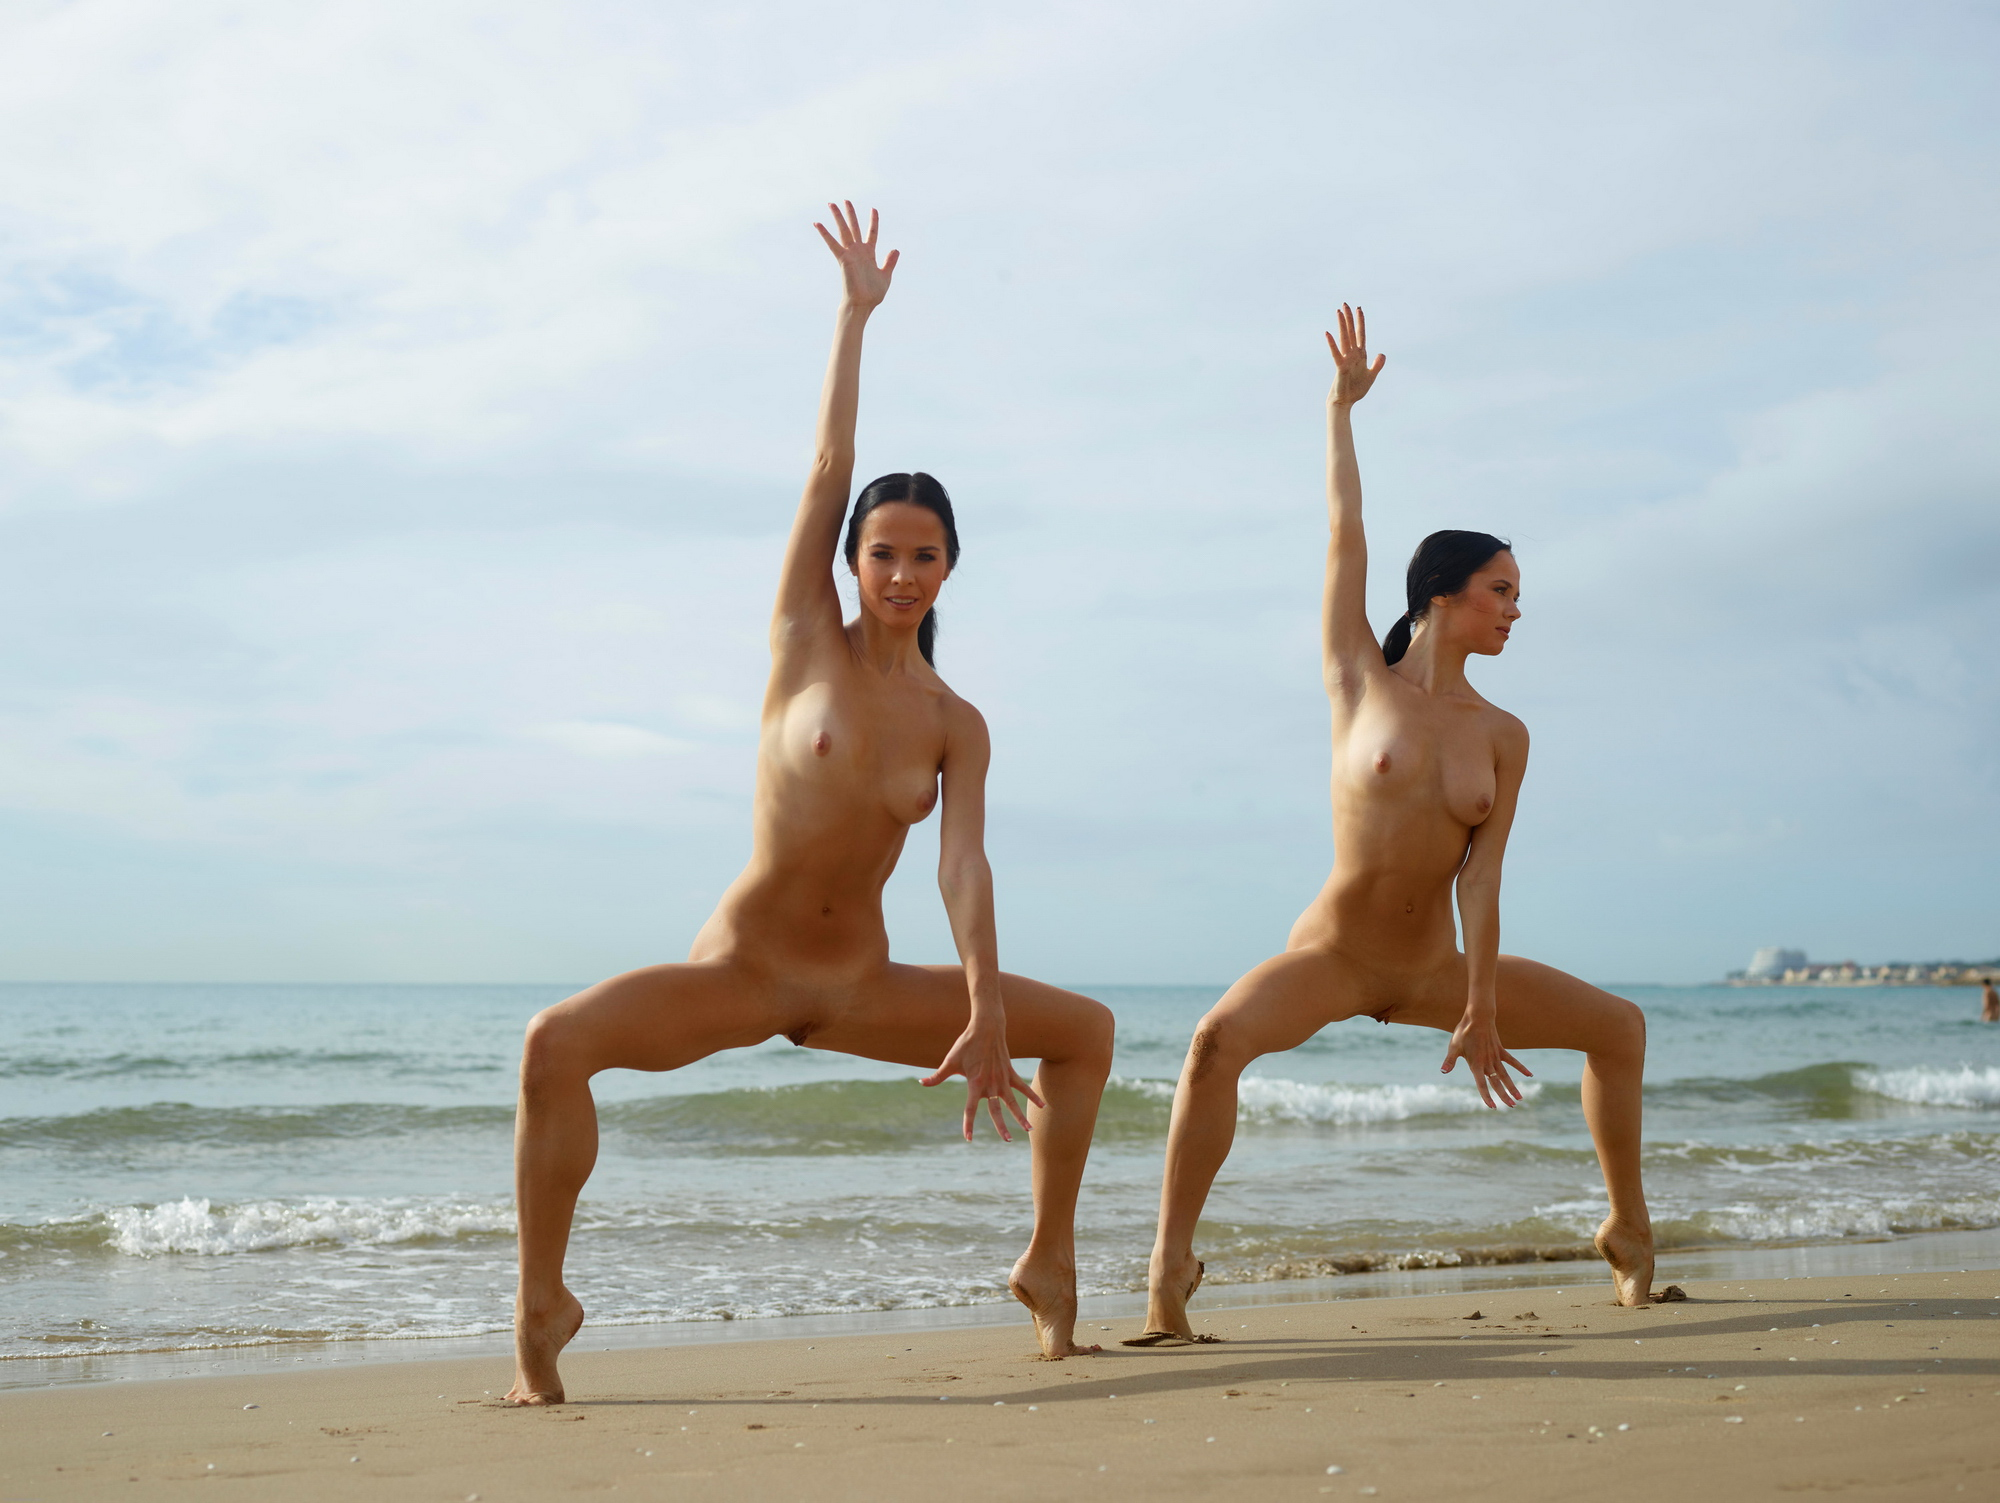 julietta-magdalena-beach-seaside-flexible-twins-hegre-art-42